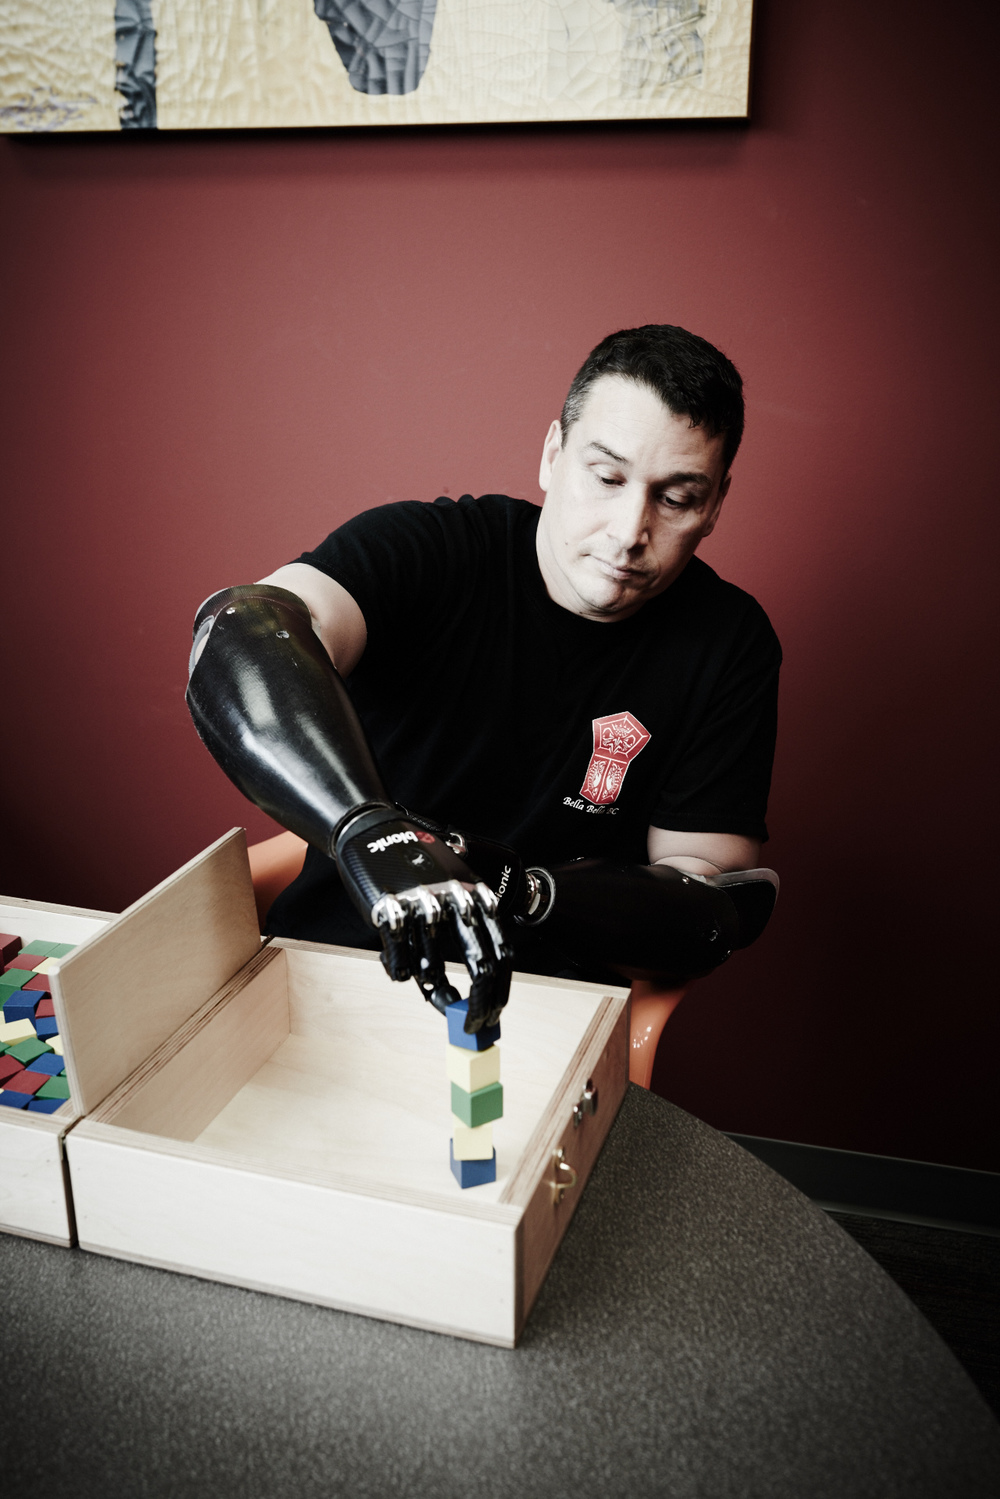 man with bilaterial transradial prostheses using BeBionic hands